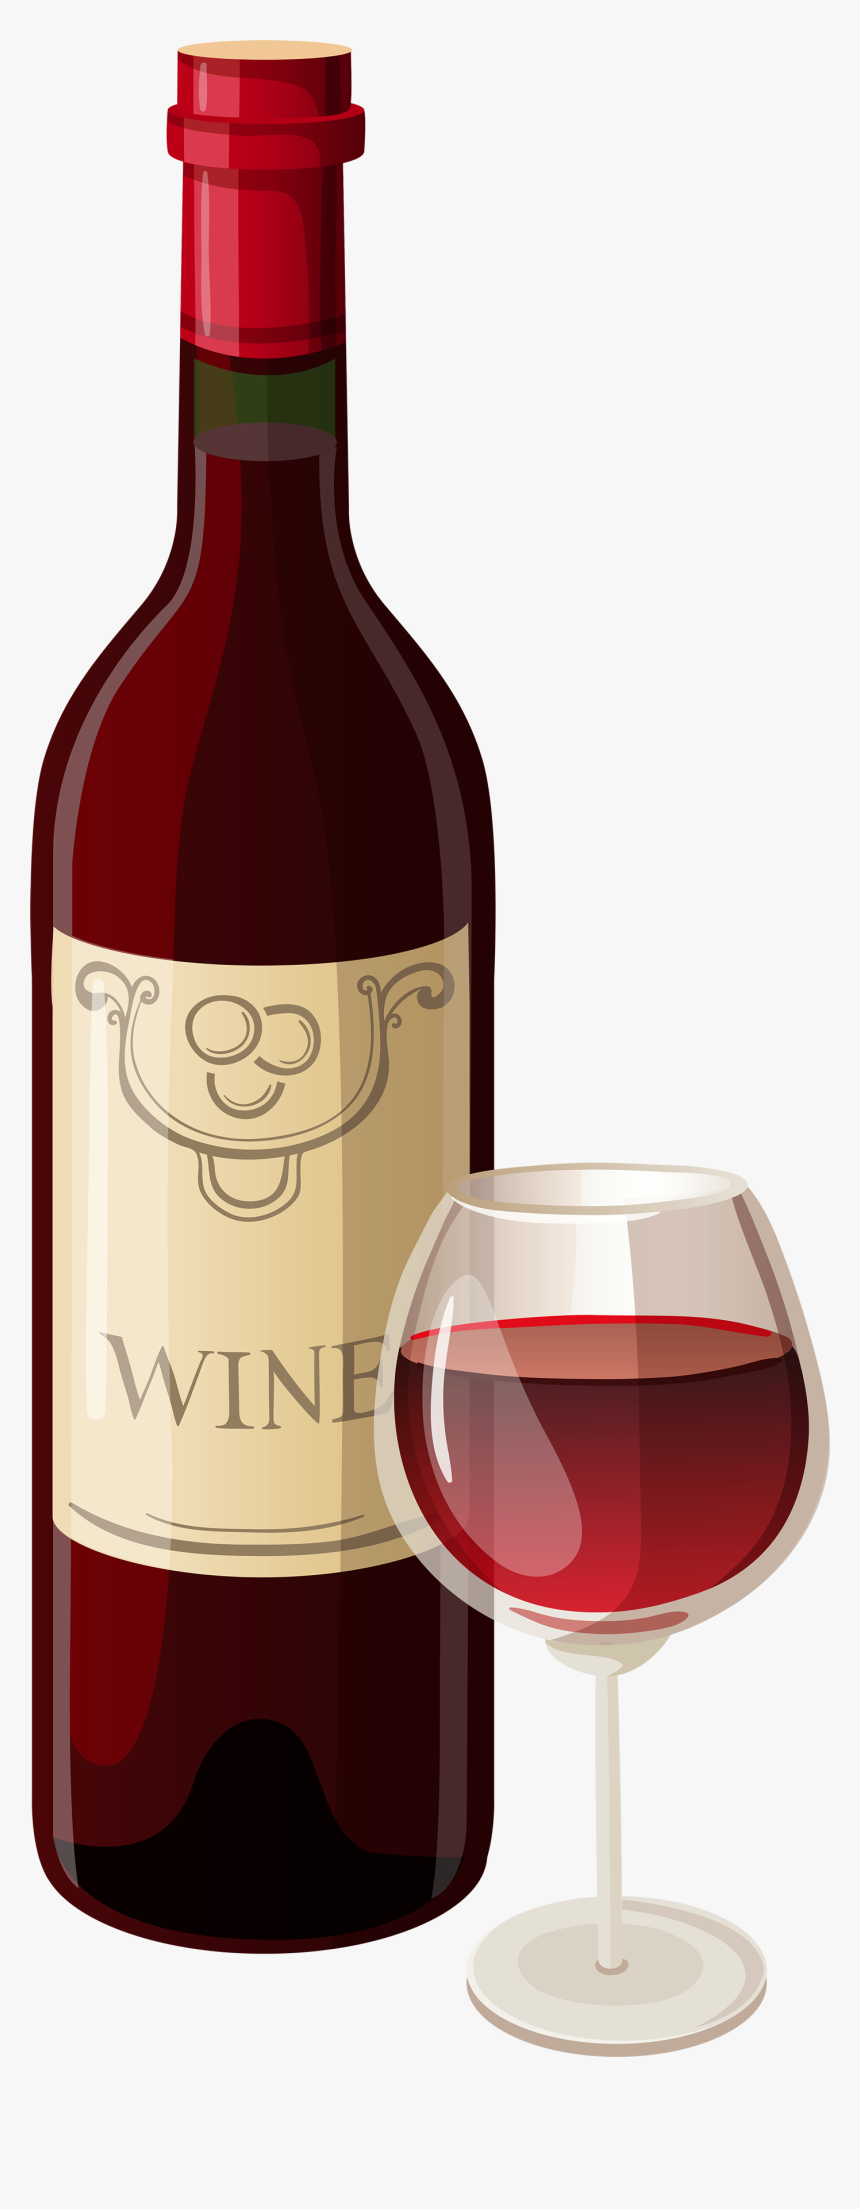 Wine Bottle And Glass Clipart, HD Png Download, Free Download